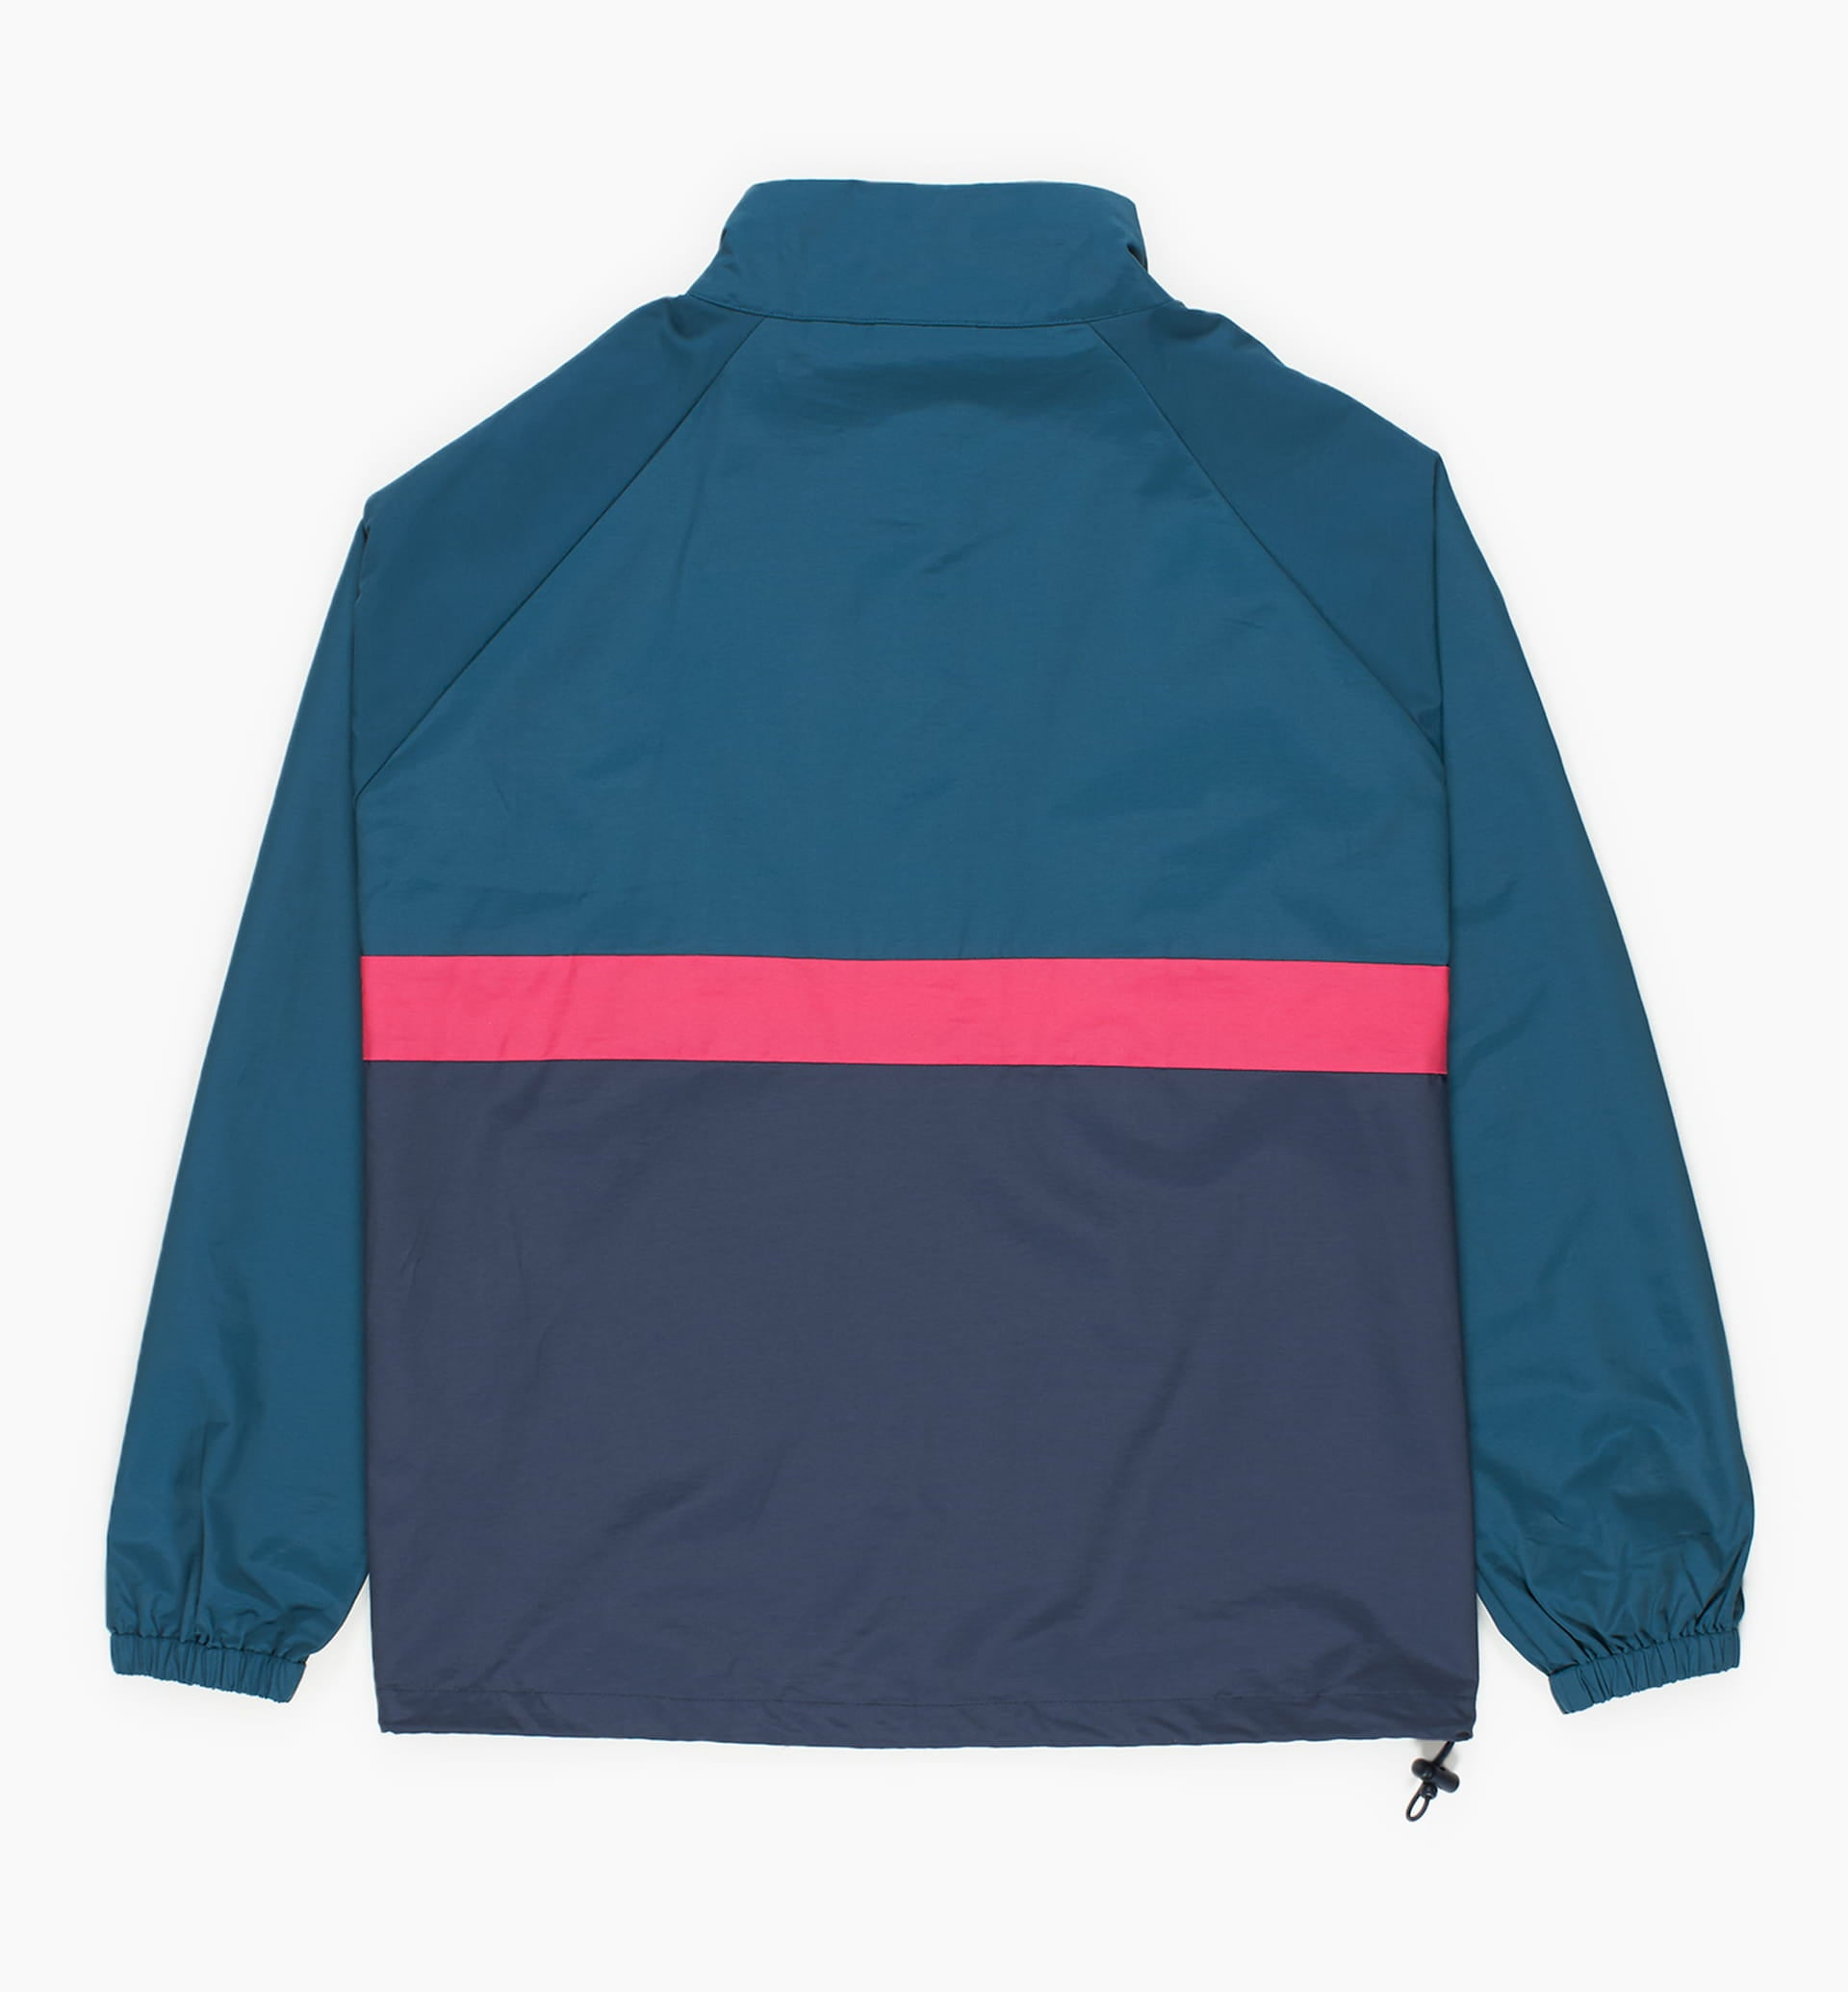 Parra - no mountains windbreaker